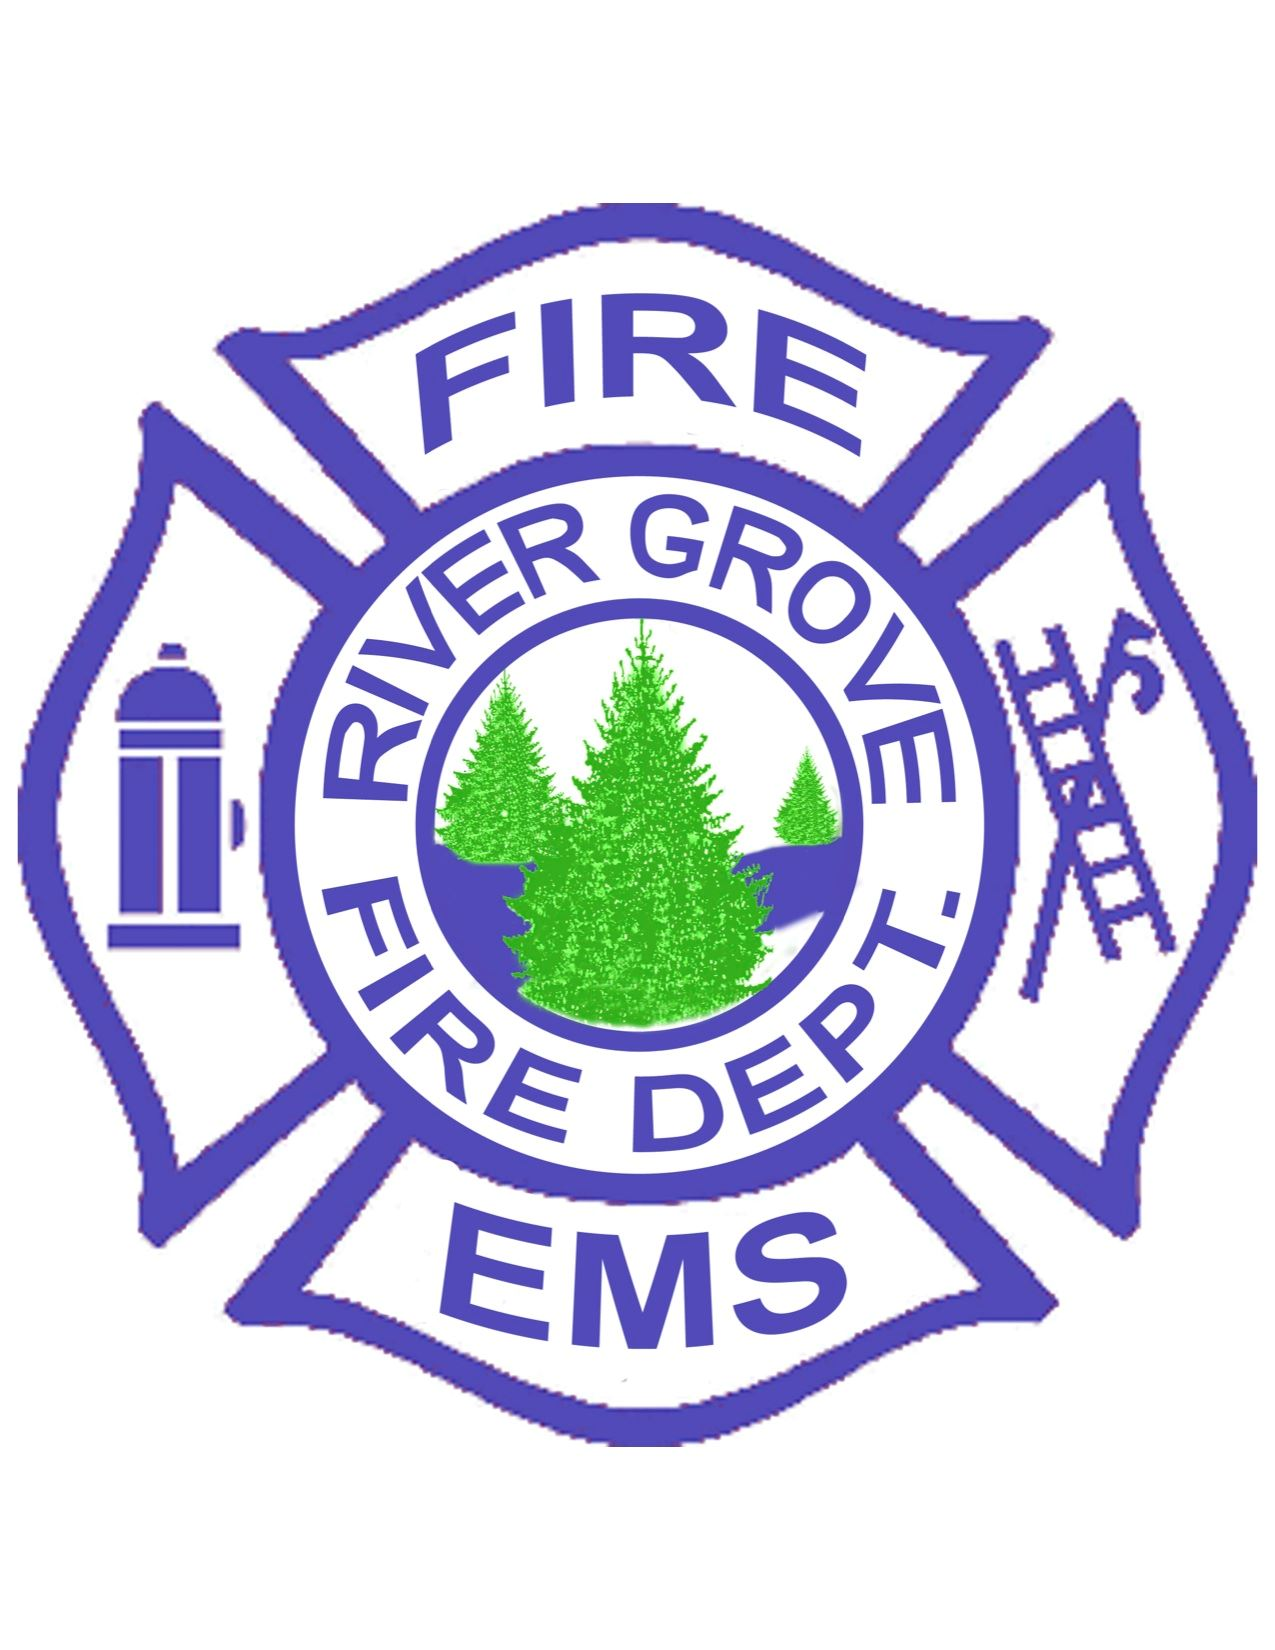 River Grove Fire Department logo